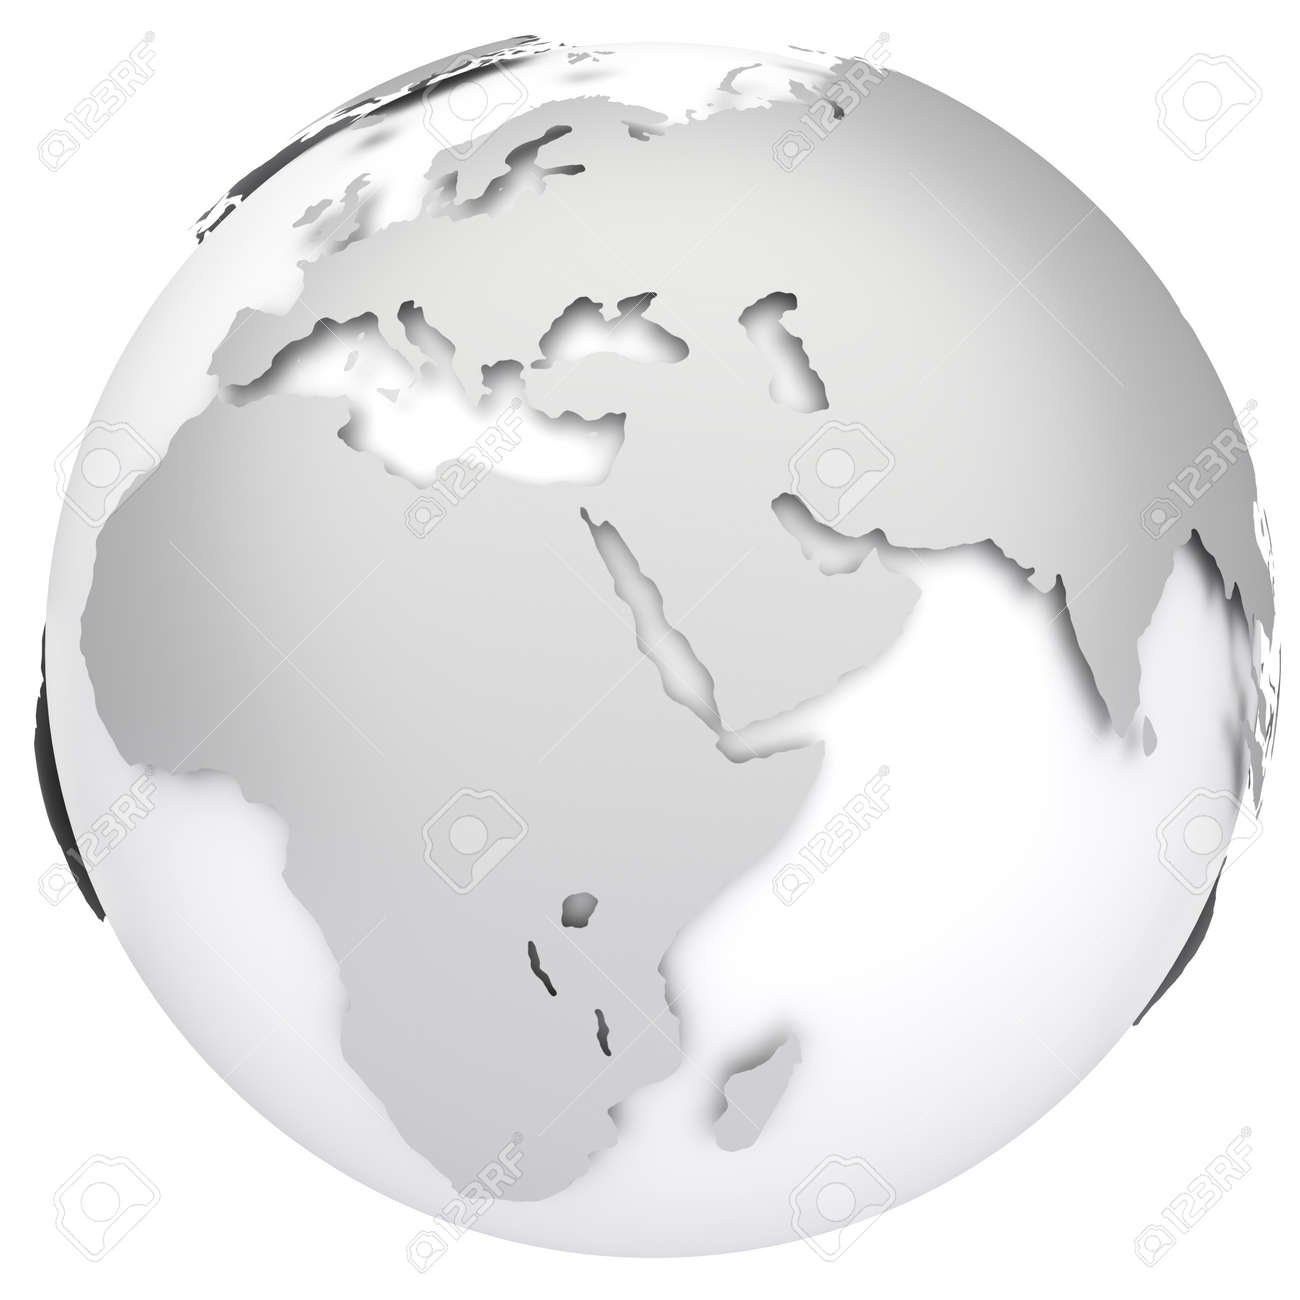 Earth Globe Map Side Of Africa Asia And Europe 3d Image – Globe Map of Europe